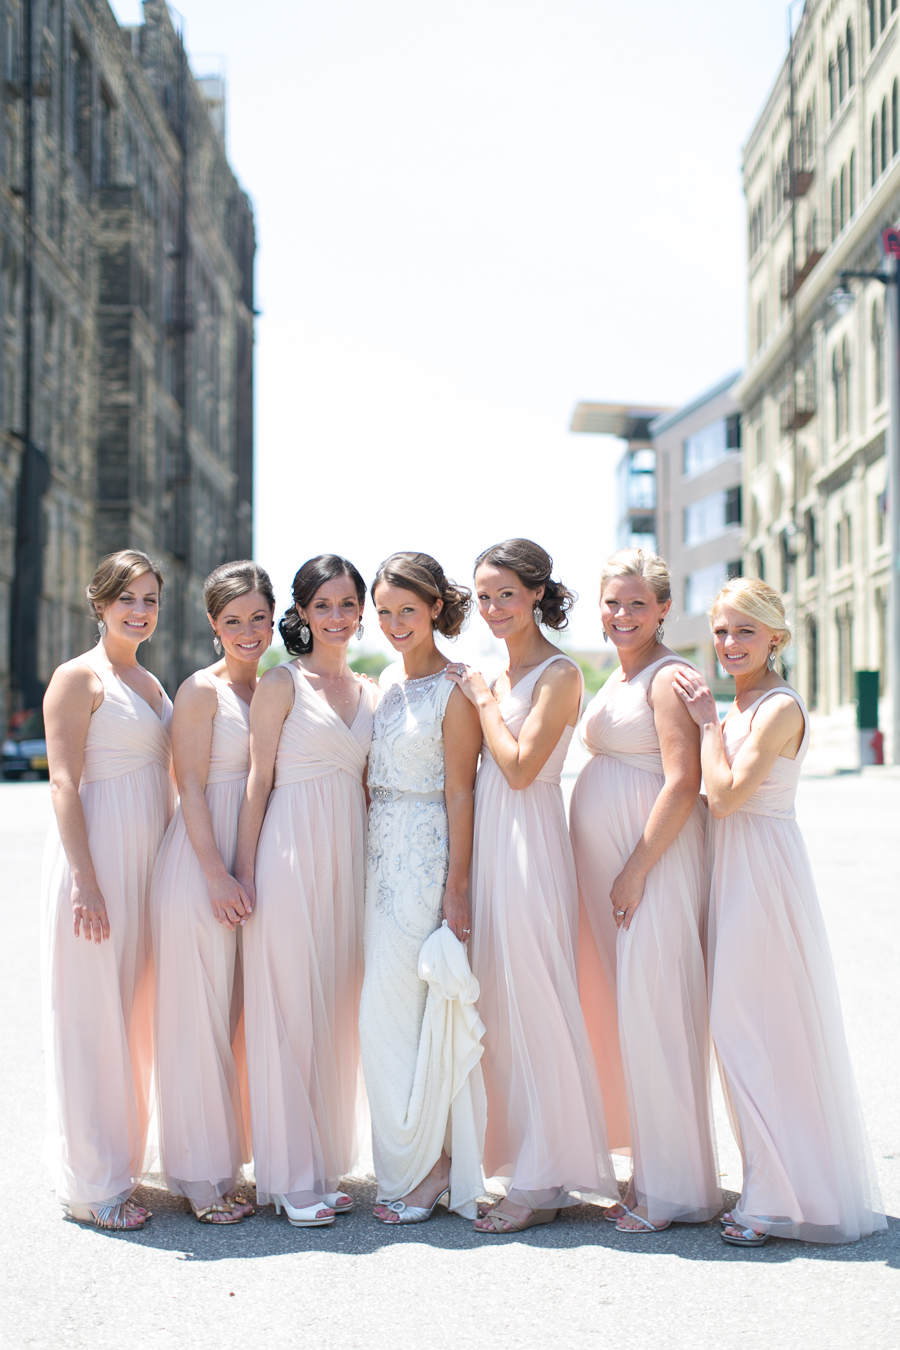 Romantic gatsby inspired wedding elizabeth anne designs the romantic gatsby inspired wedding elizabeth anne designs the wedding blog ombrellifo Image collections